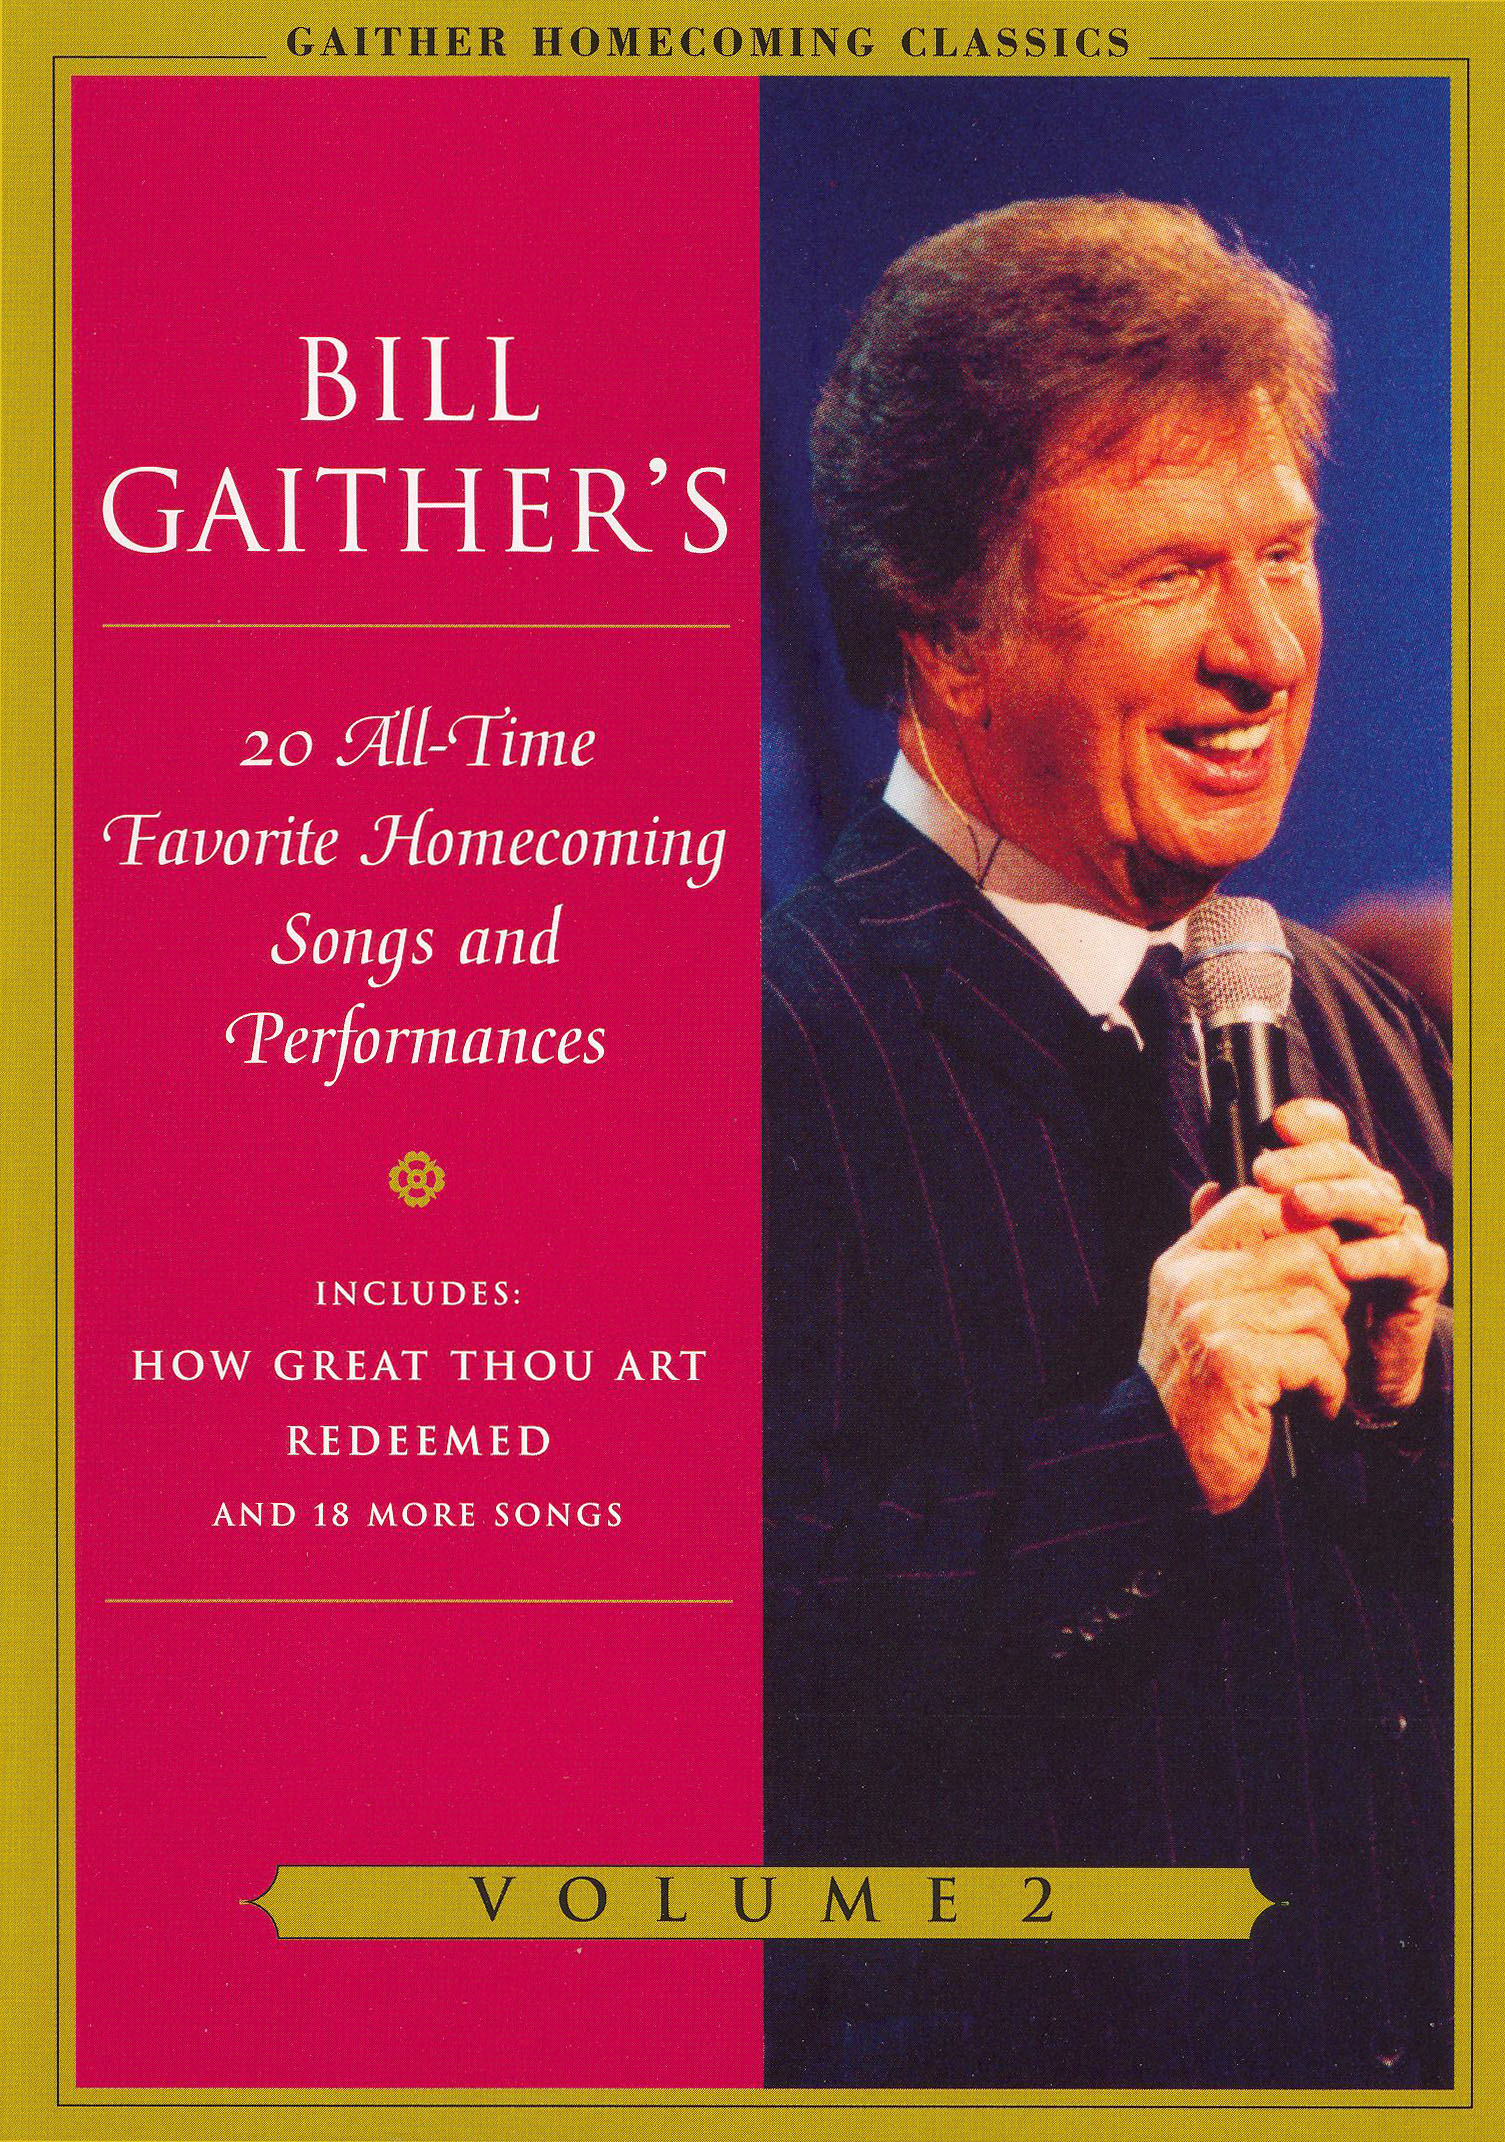 Bill and Gloria Gaither: Gaither Homecoming Classics, Vol. 2